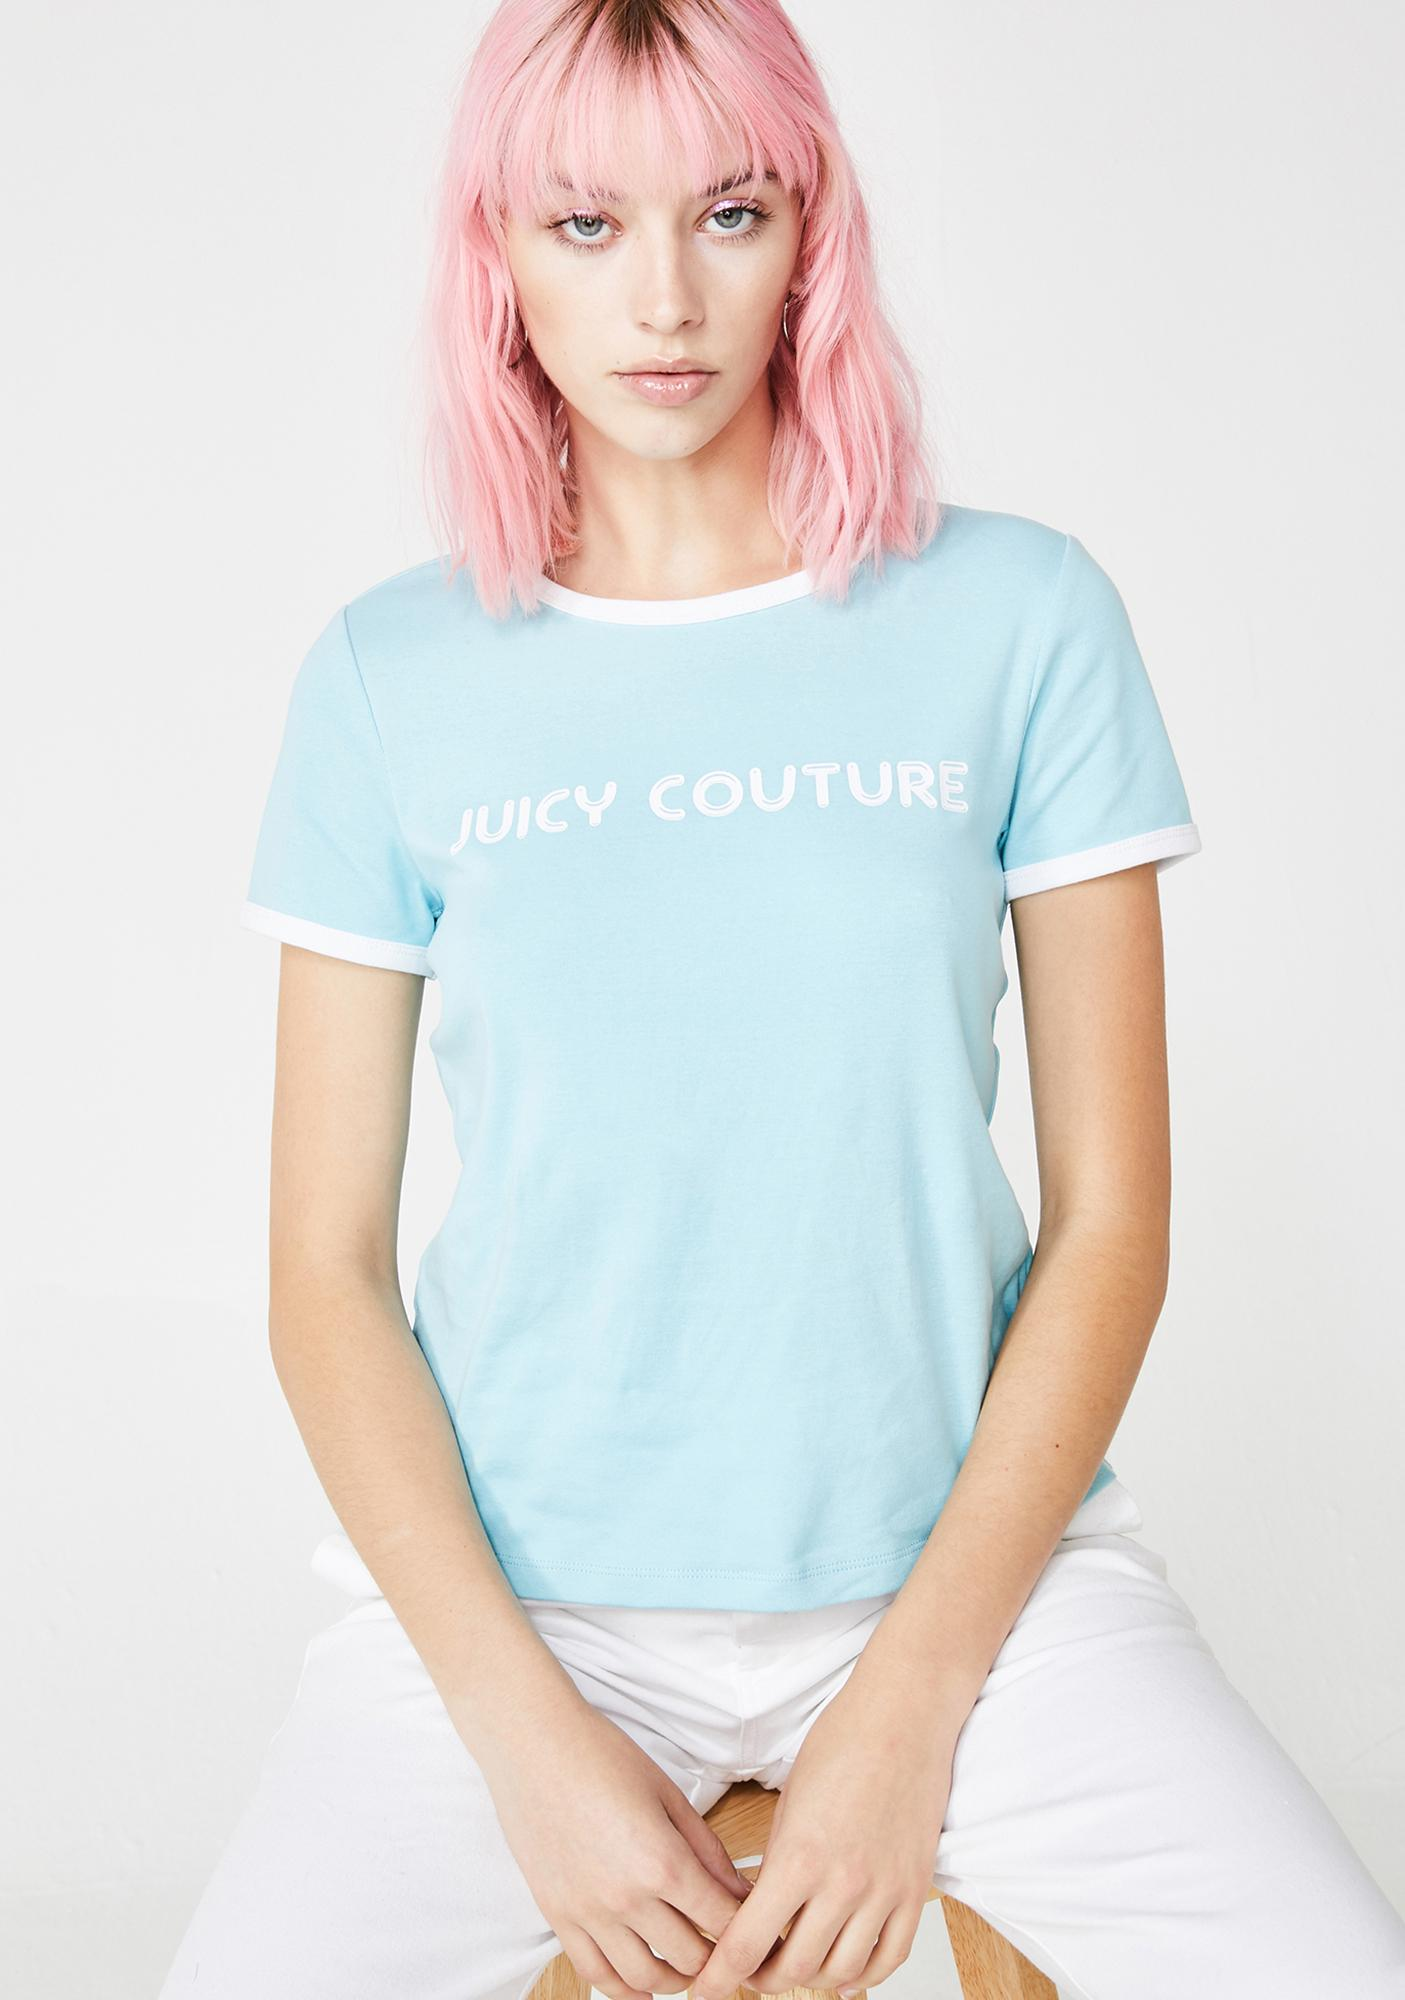 JUICY COUTURE Juicy Graphic Tee